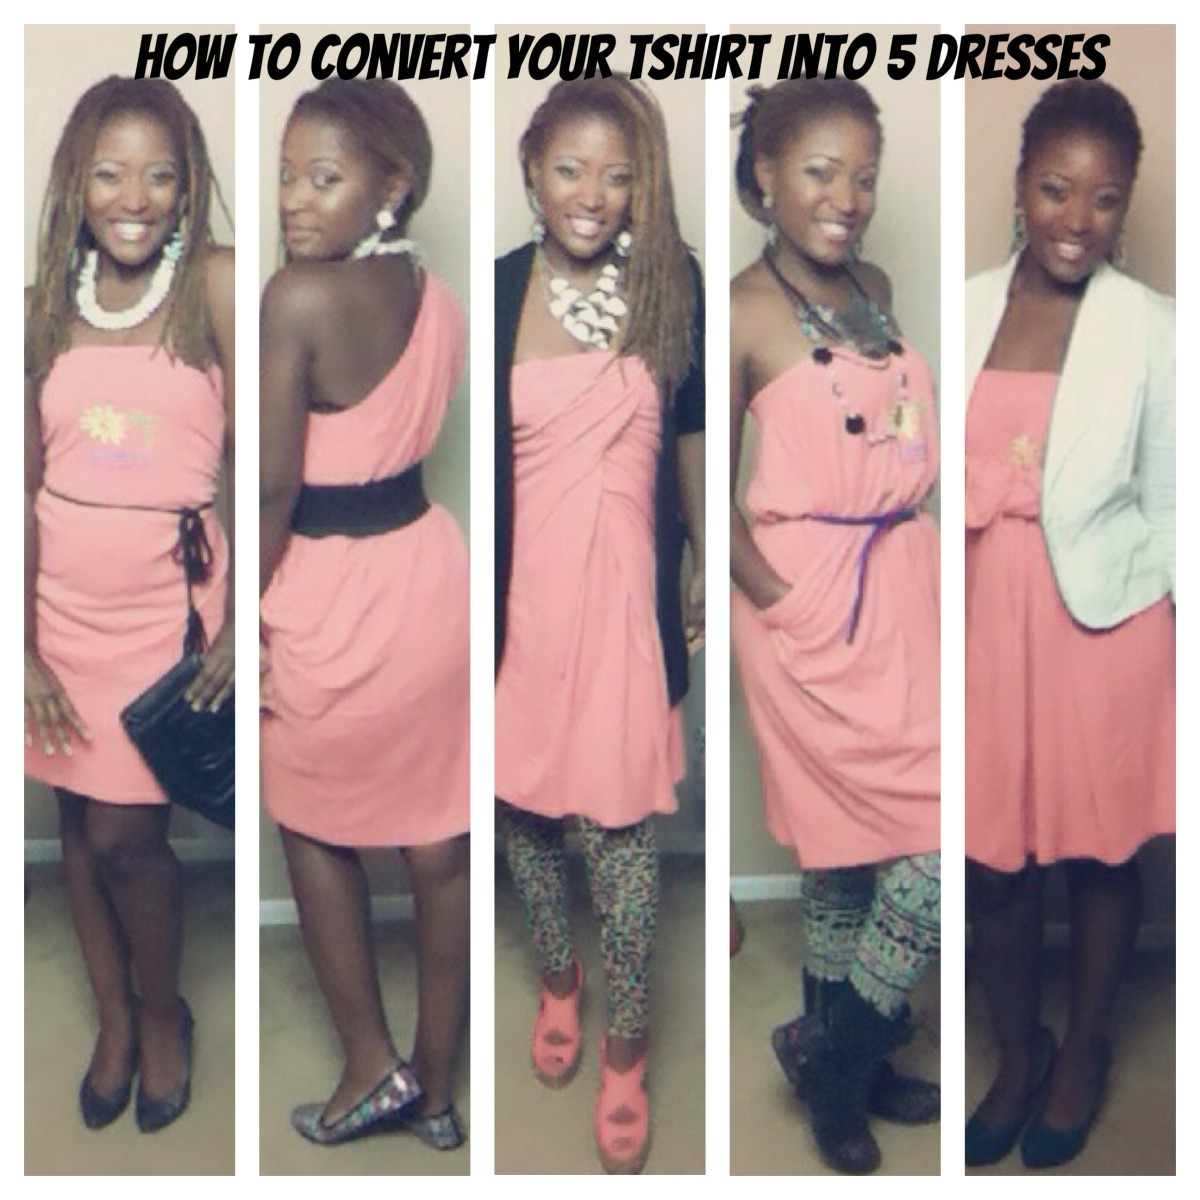 How To Convert Your Basic T-Shirt Into 5 Lovely Dresses: No Sewing